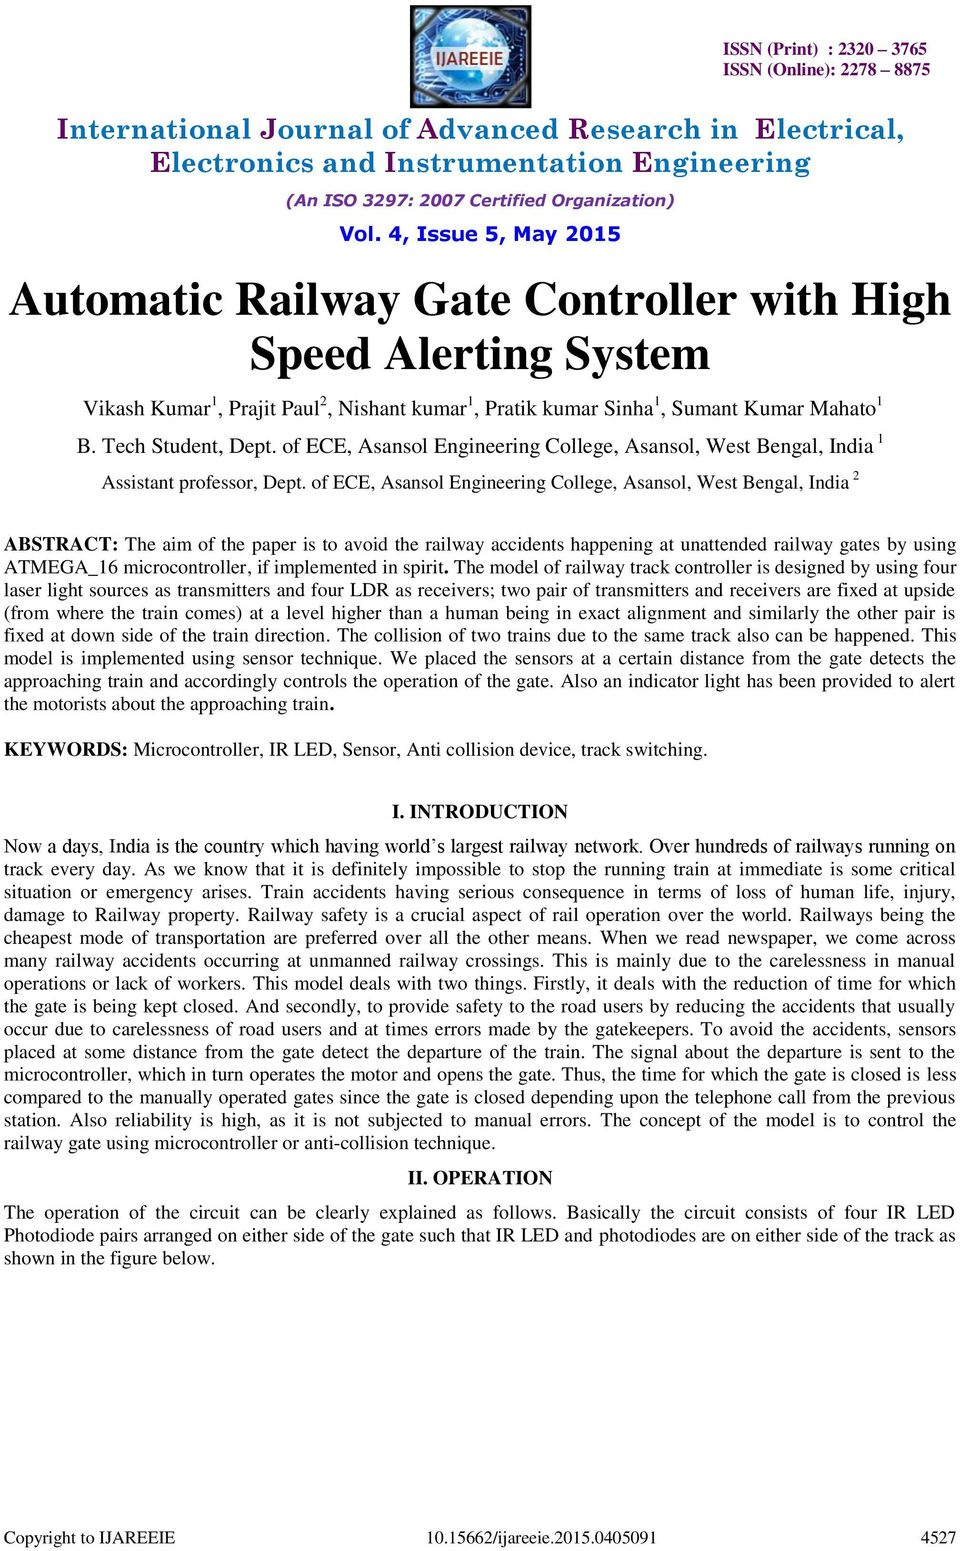 Automatic Railway Gate Controller With High Speed Alerting System Pdf Digital Thermometer Using 8051 Electronic Circuits And Diagram Of Ece Asansol Engineering College West Bengal India 2 Abstract